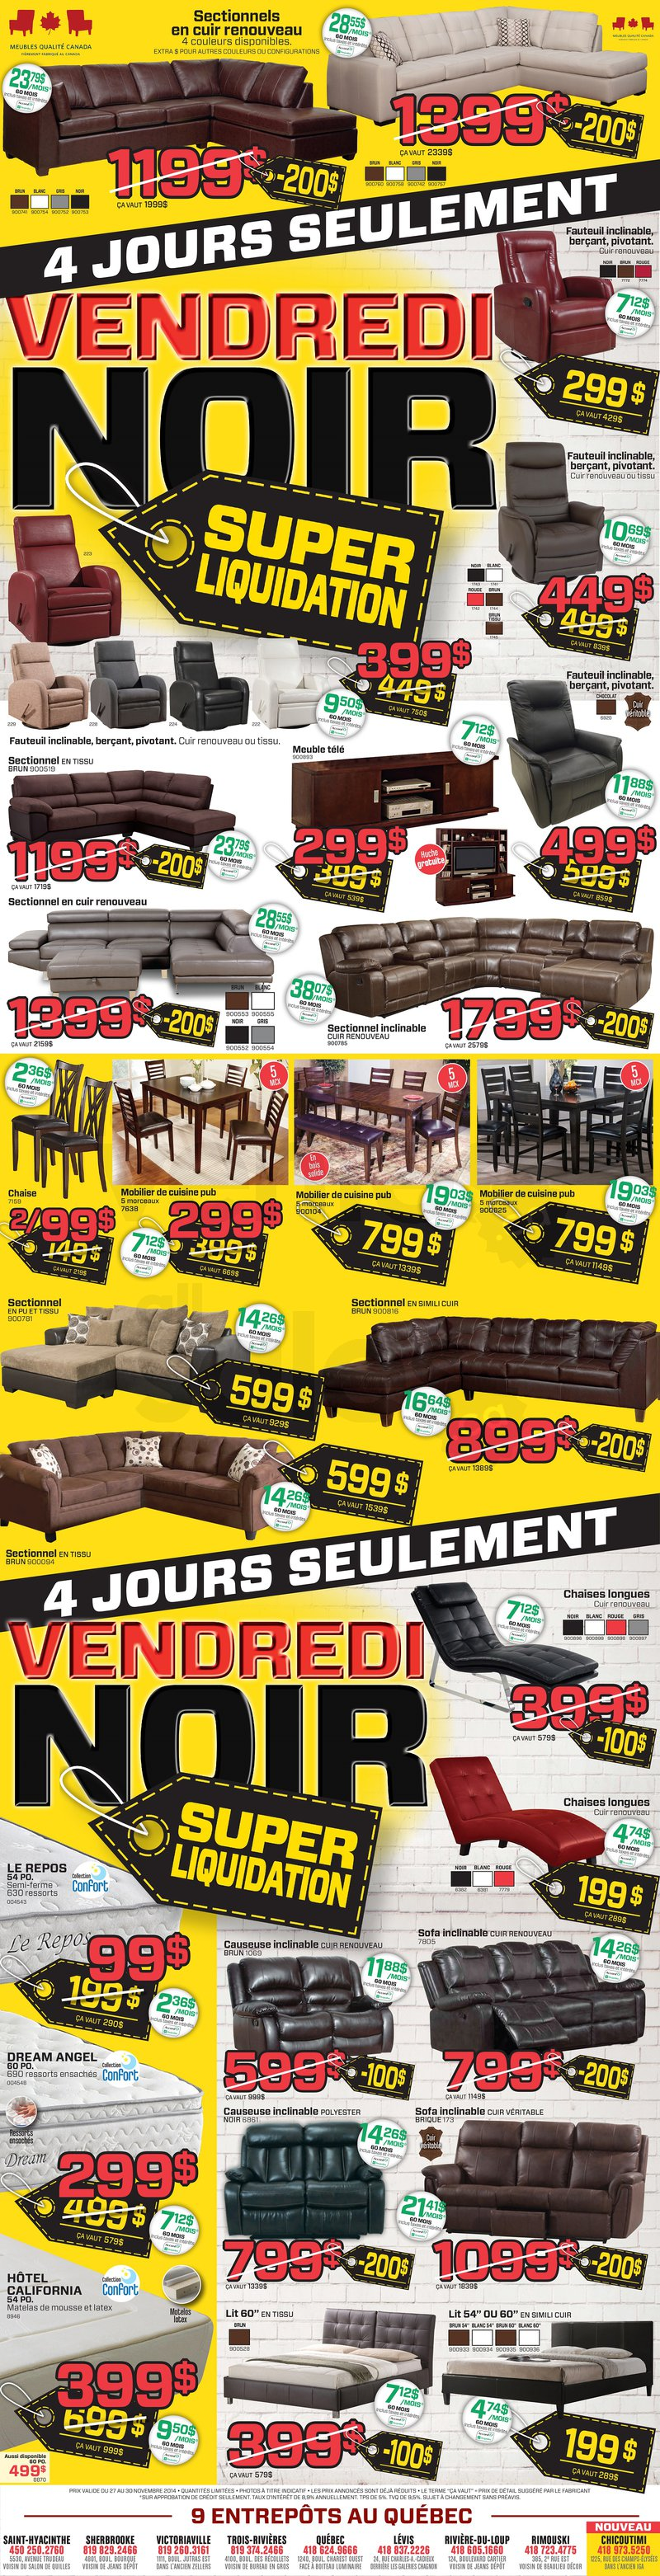 Meubles super liquidation vendredi noir for Ashley meuble sherbrooke